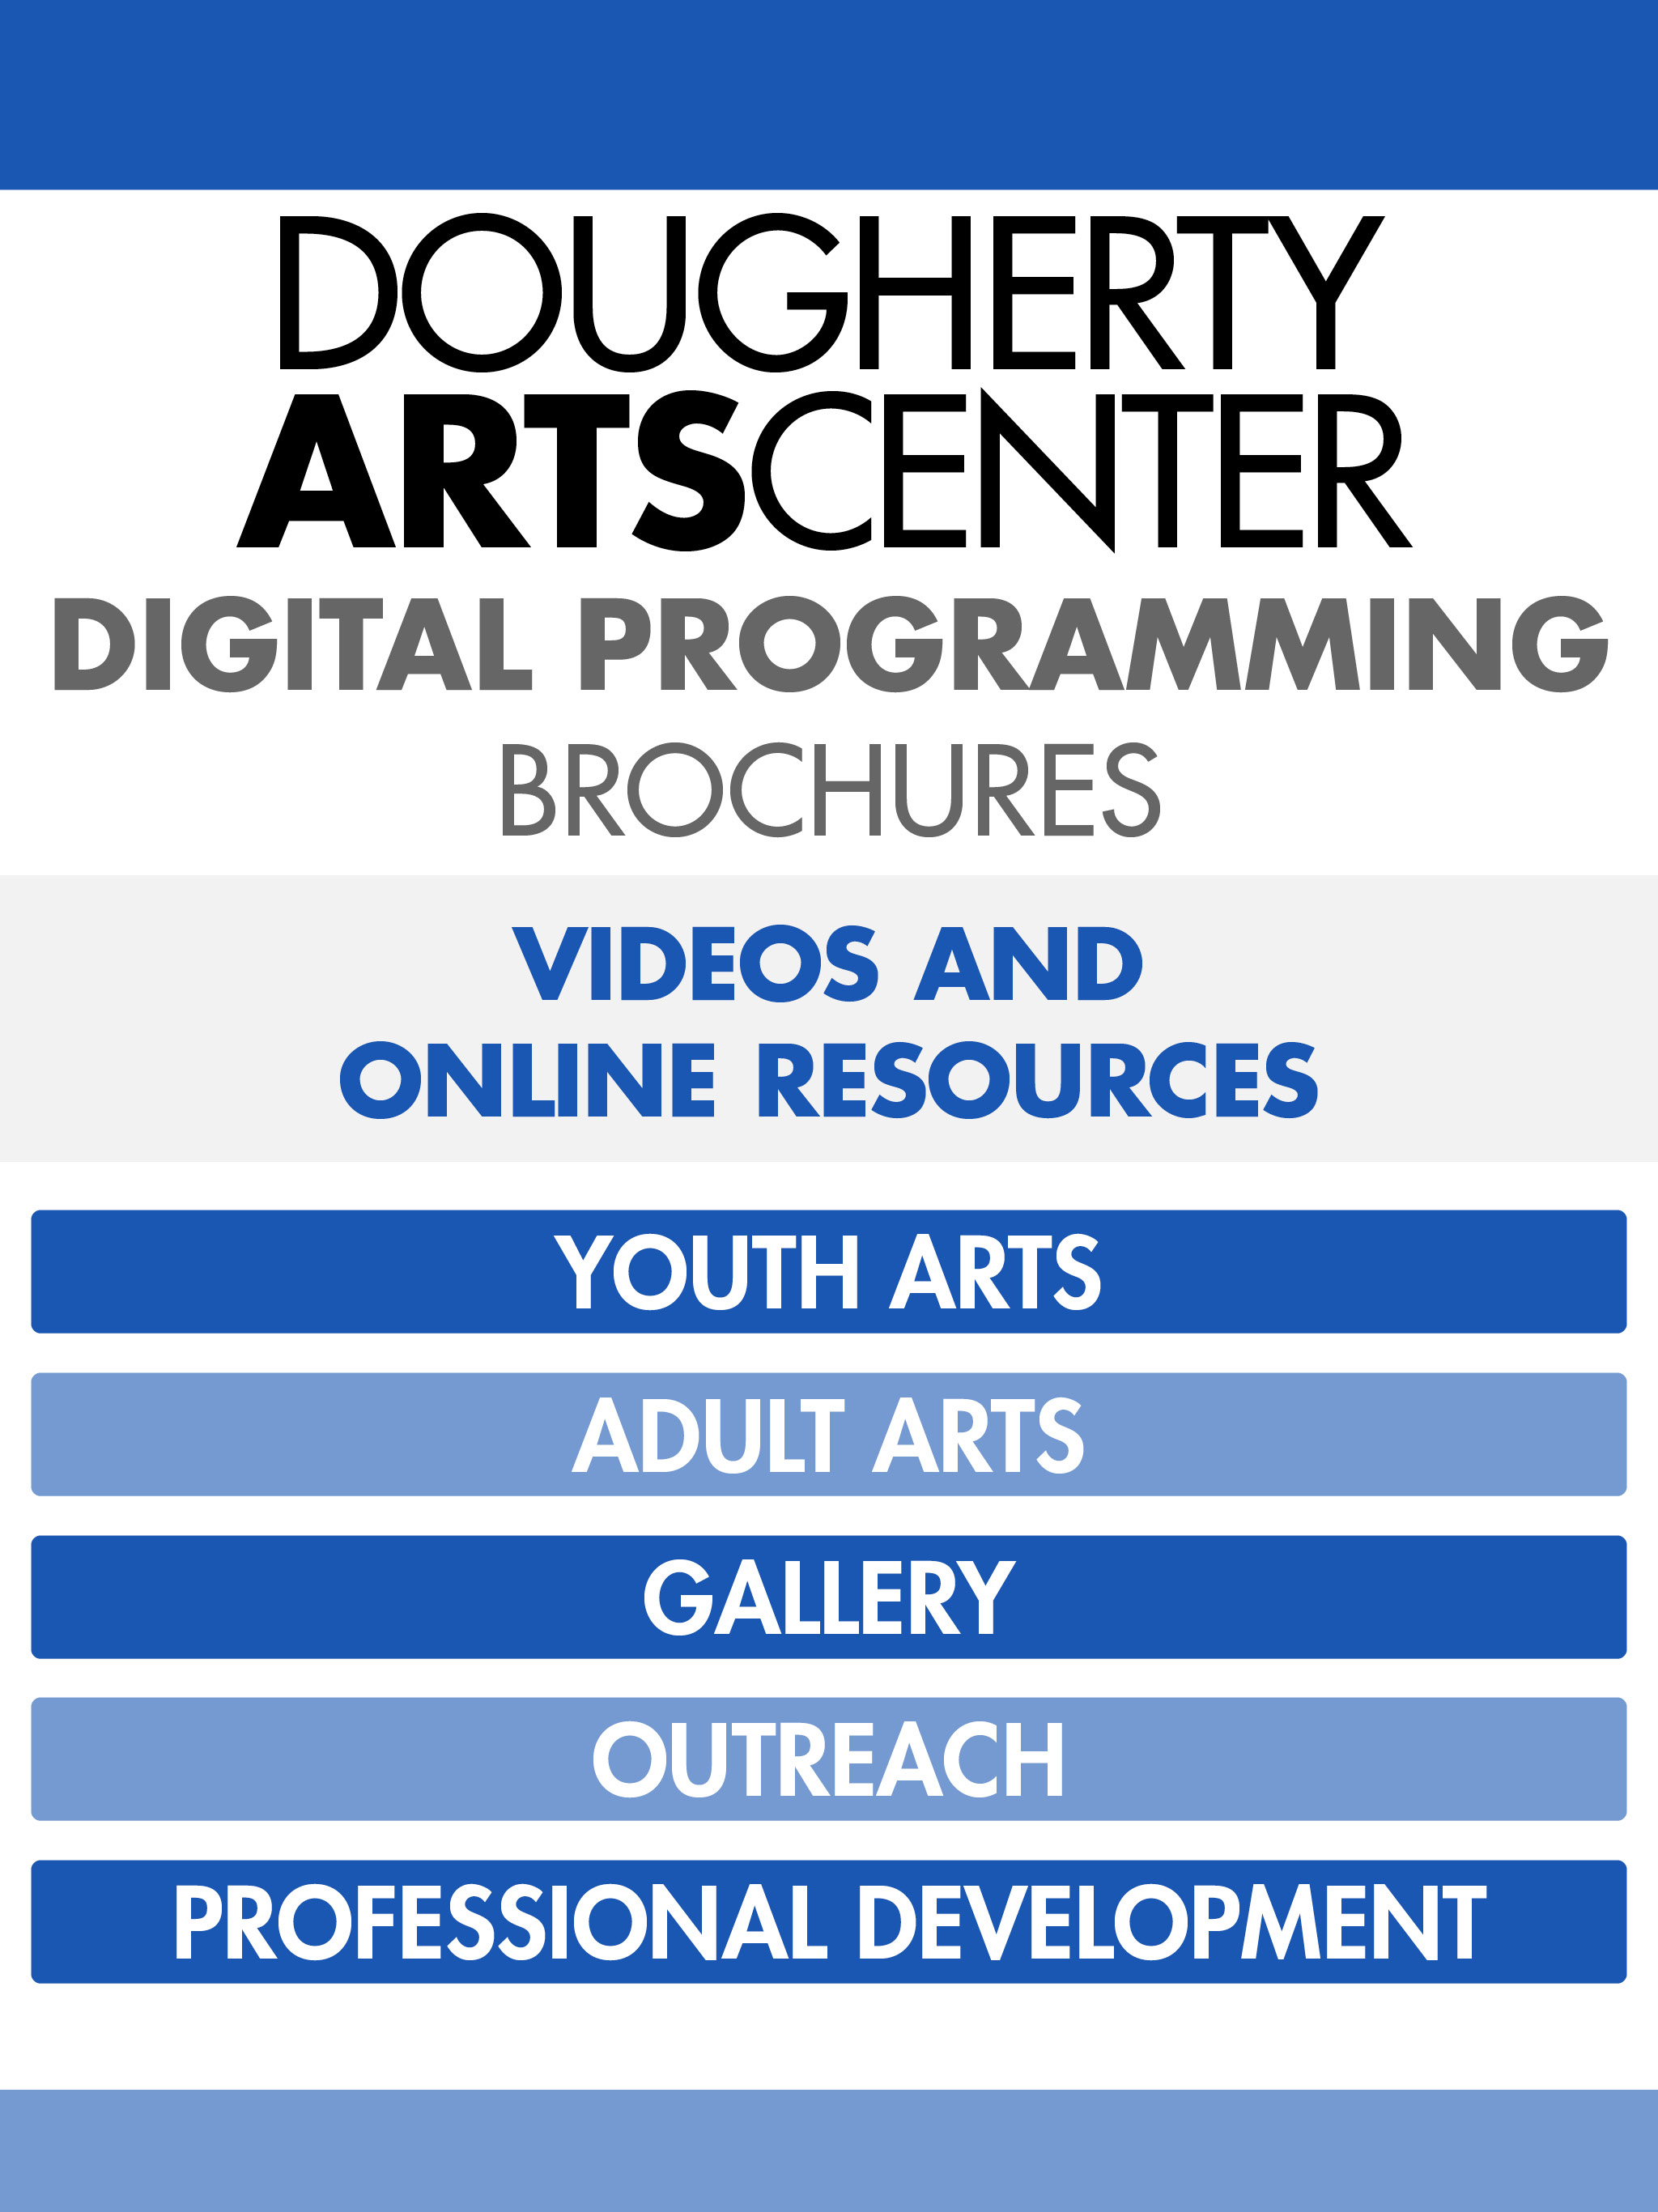 Digital Programming Brochures